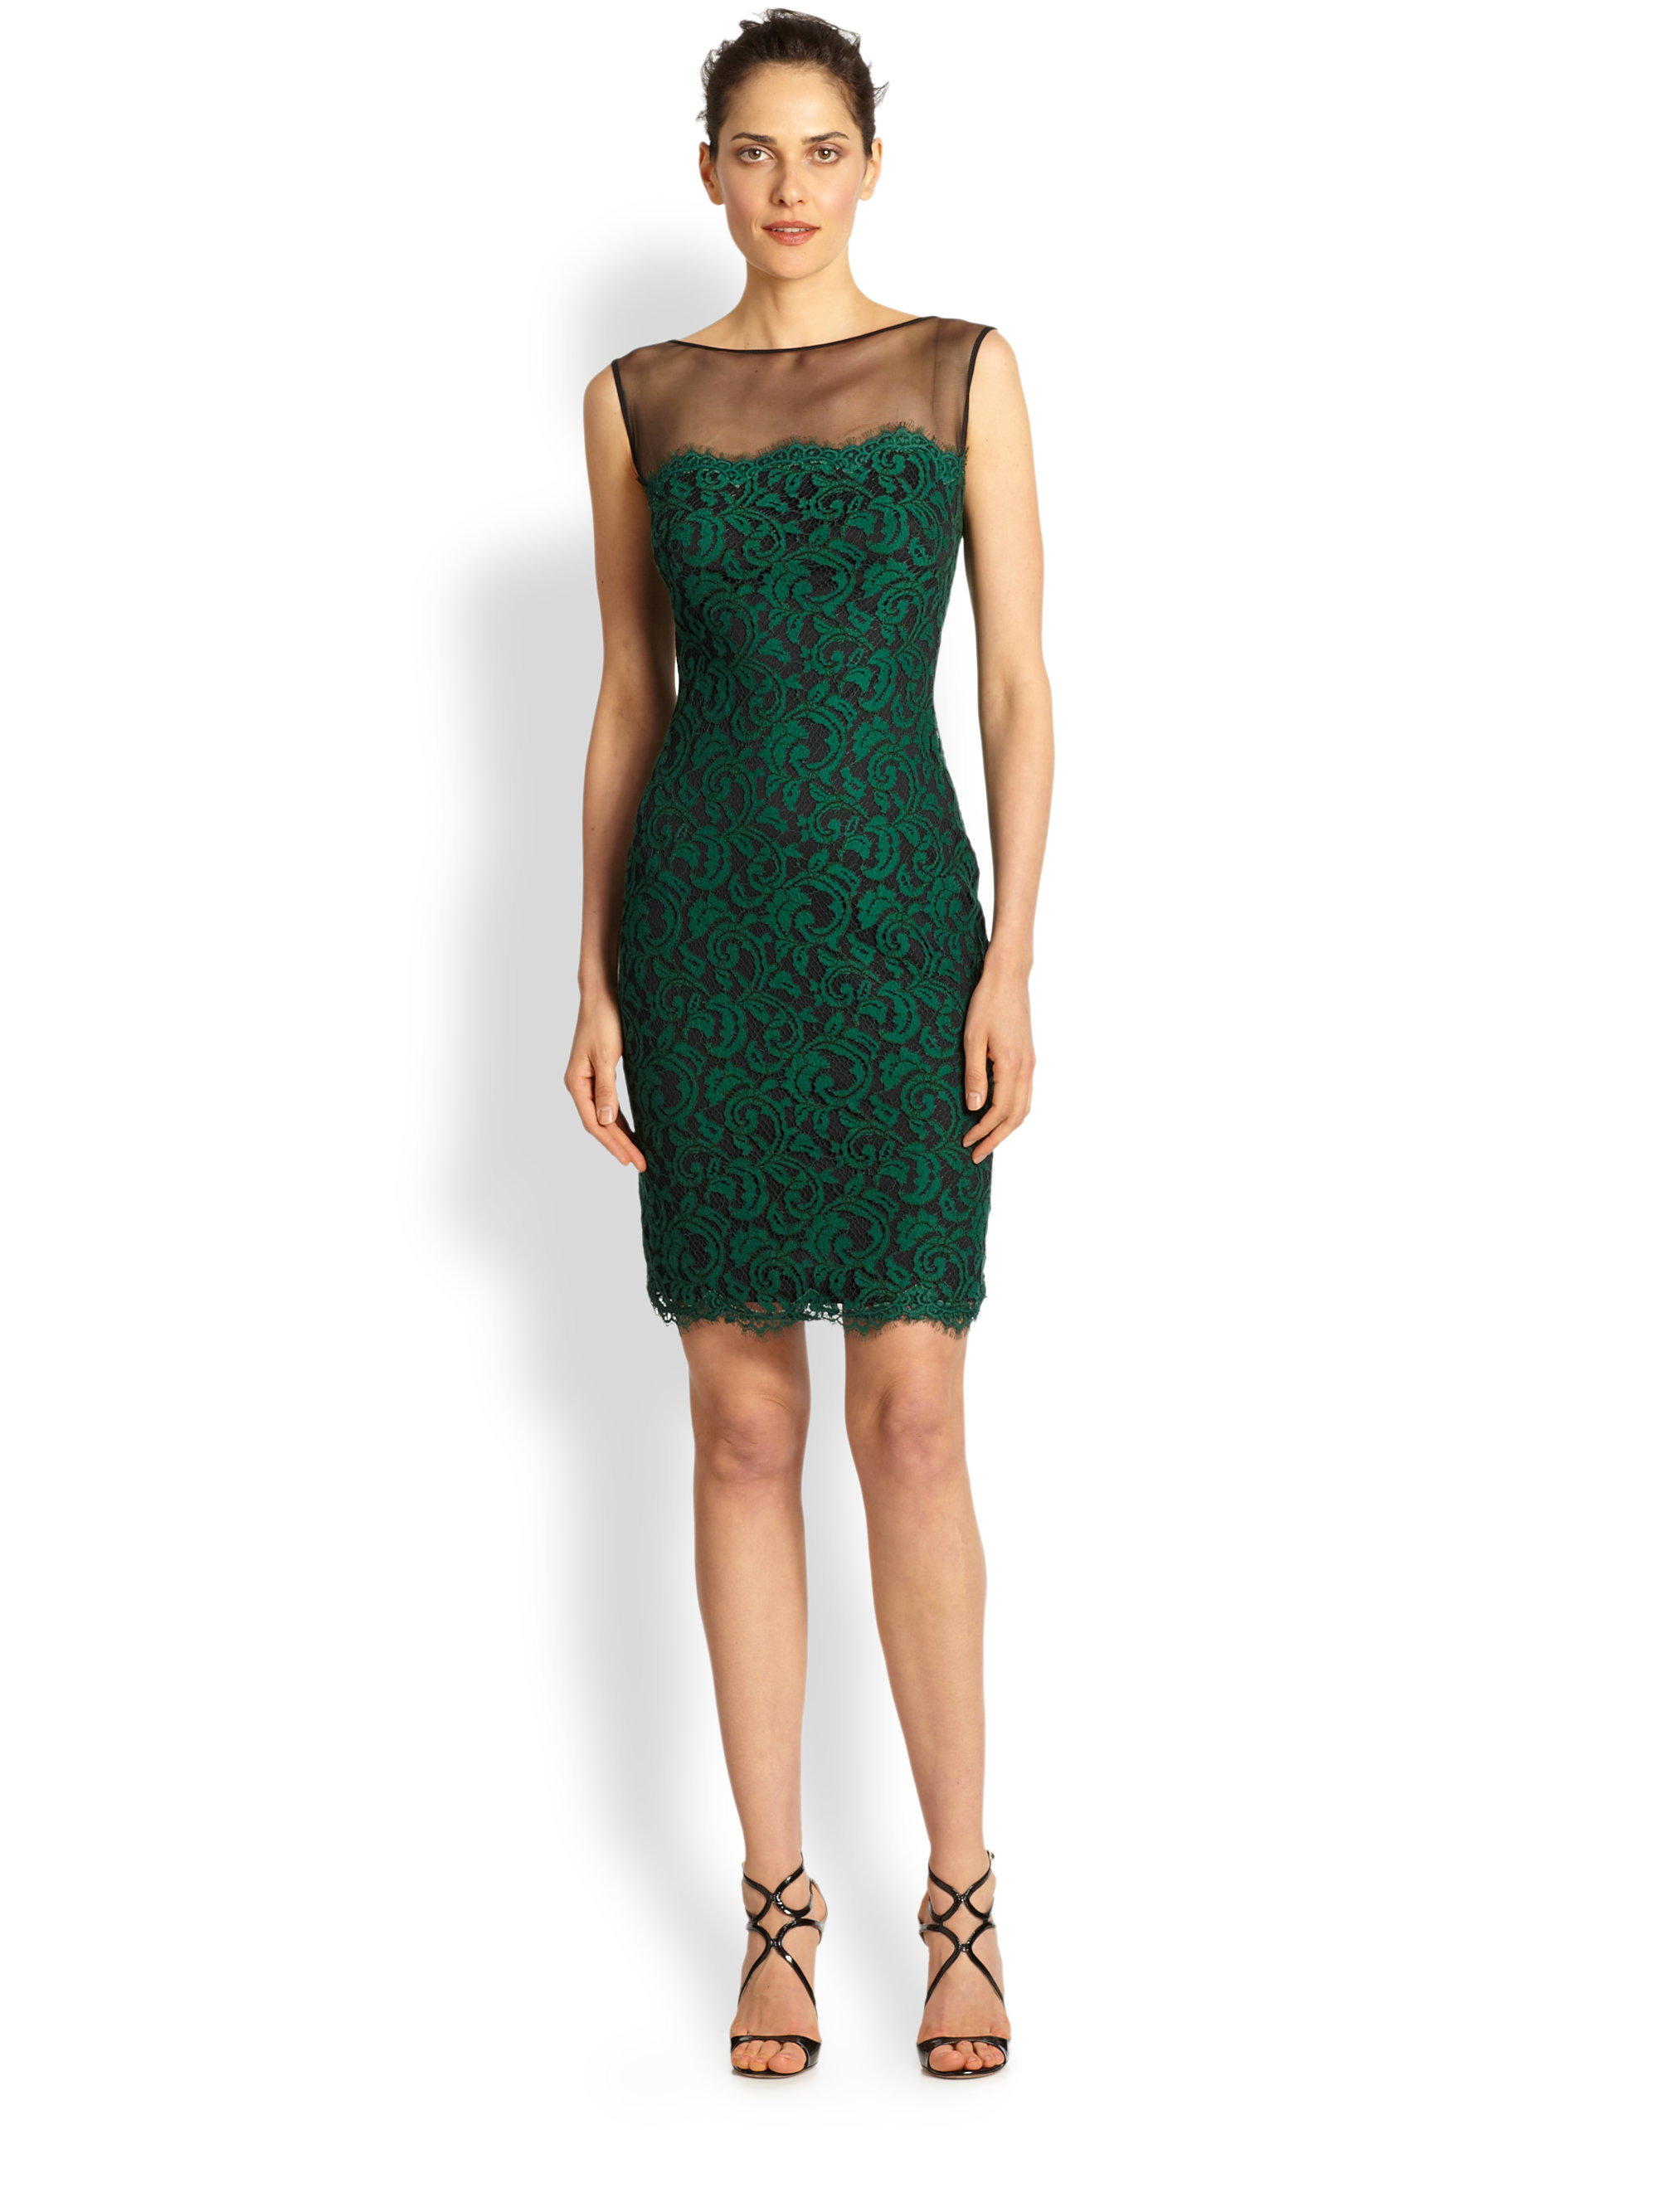 Green Lace Cocktail Dress Greenchoice Inloggen